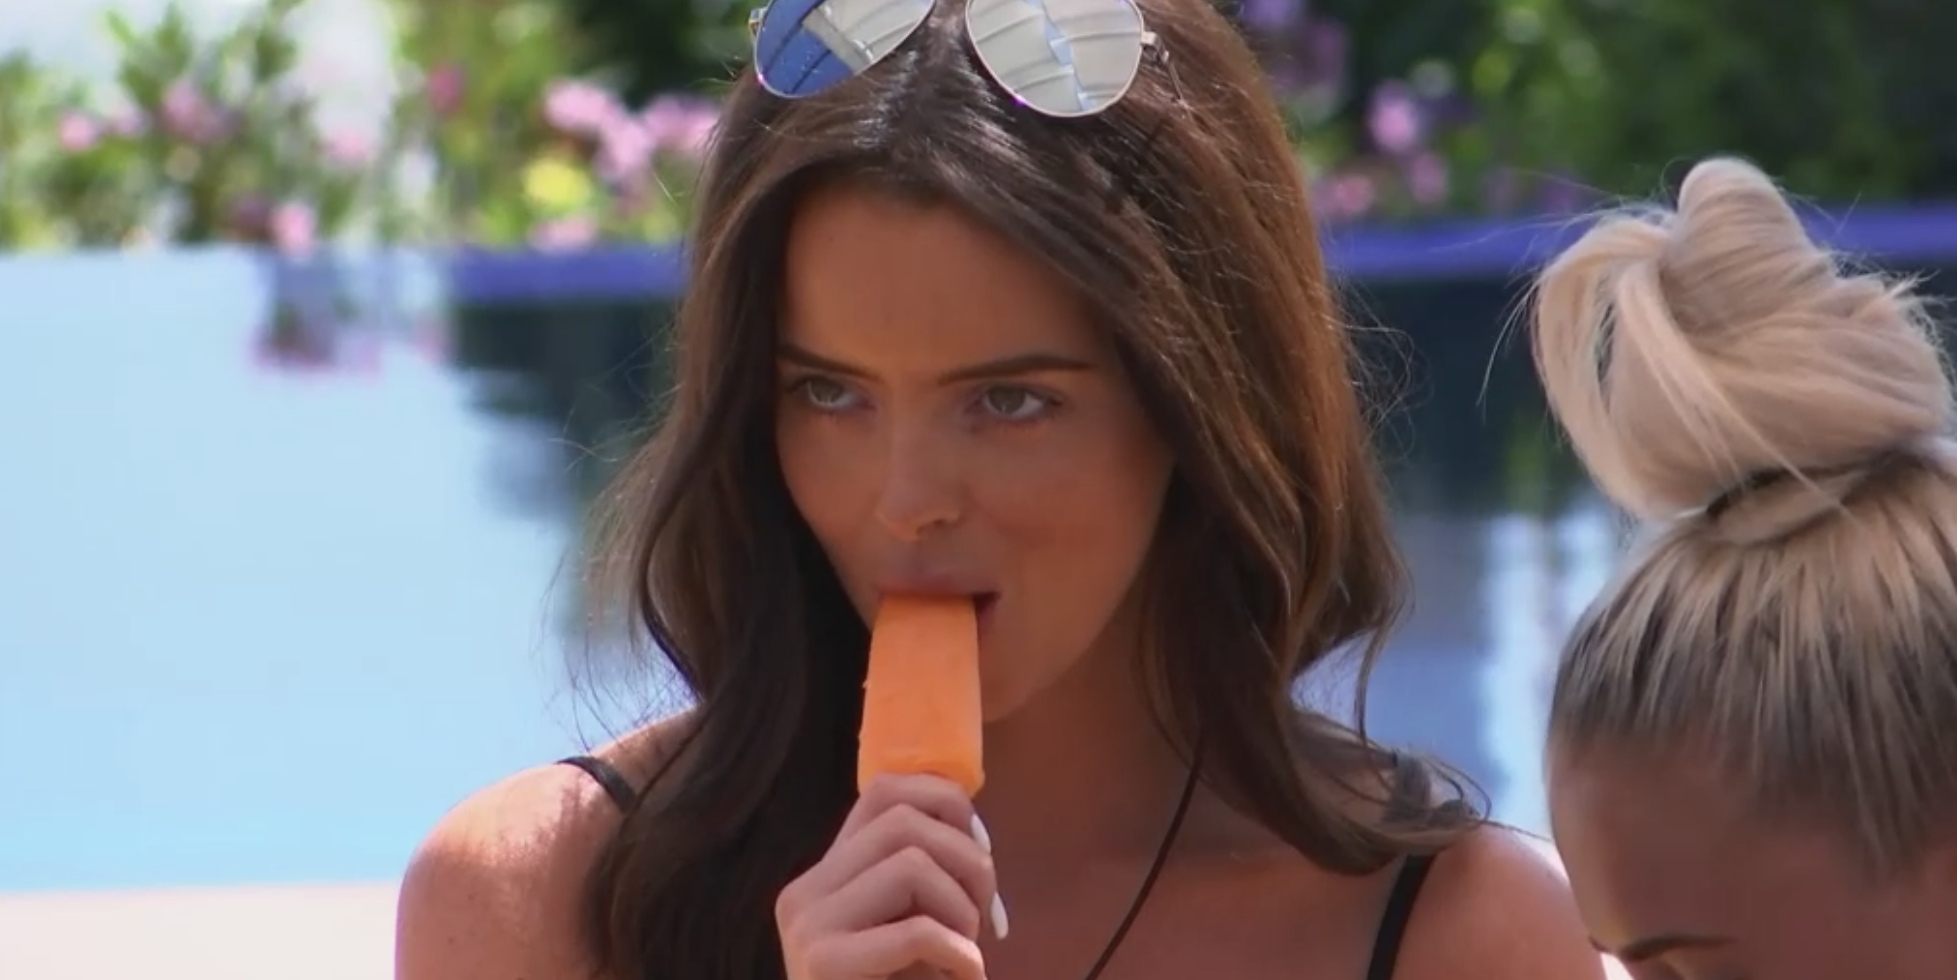 Nearly 500 Complaints About Love Island's Maura Higgins